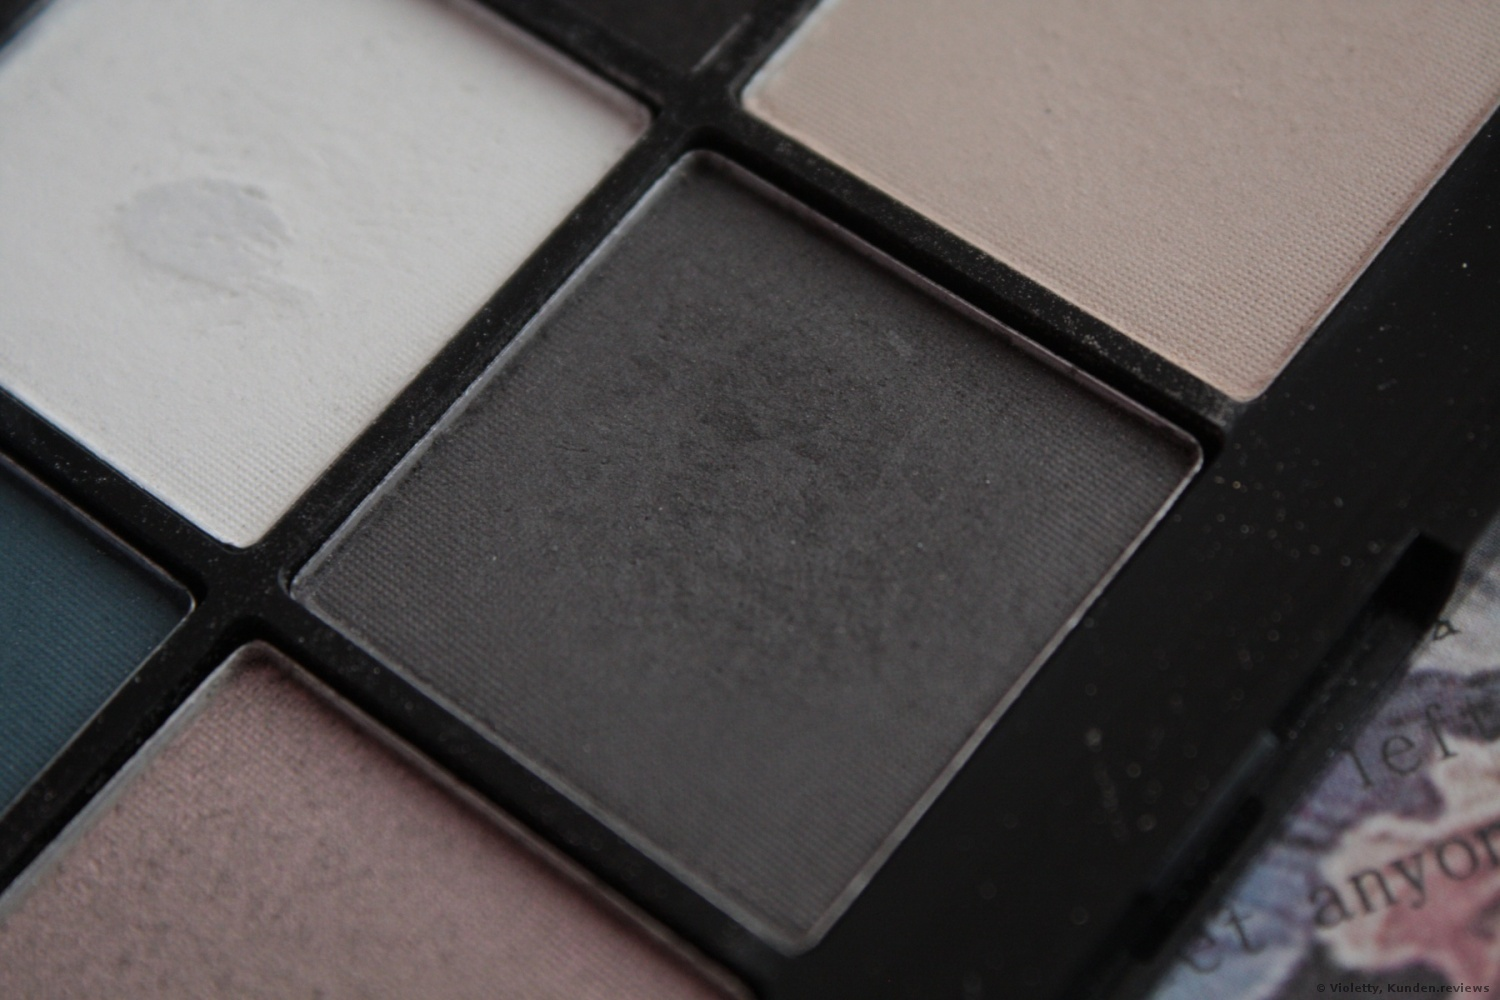 NYX Prof. Makeup Perfect Filter Shadow Palette #8